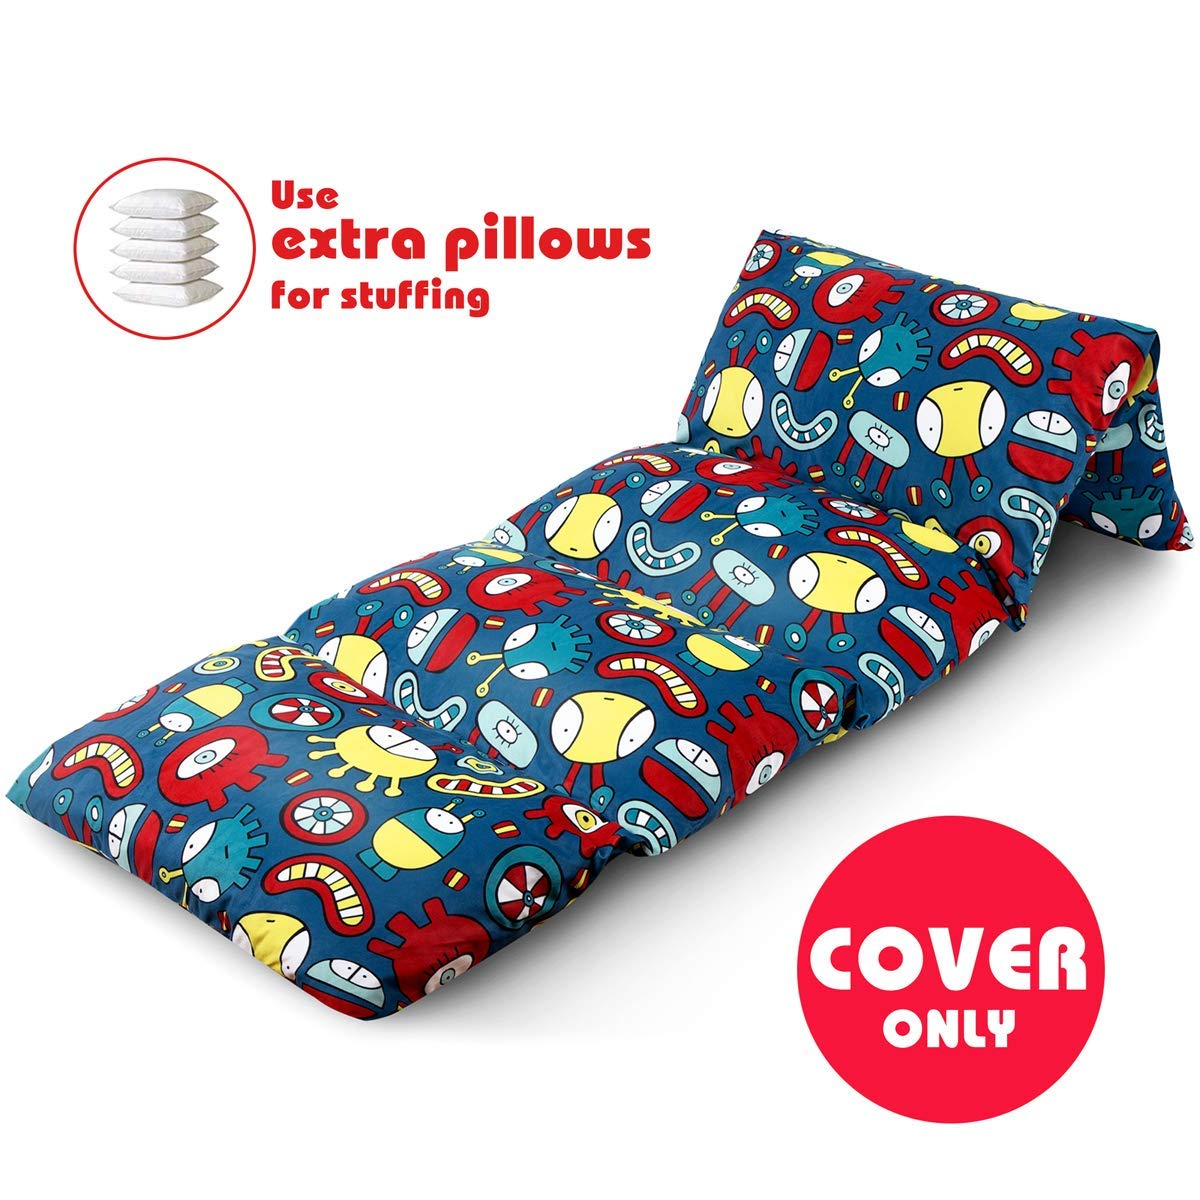 BROLEX Floor Lounger Pillow Bed Cover for Kids,(Pillow Not Included) Comfortable Seat for Reading, Naps, Watching TV, or Sleepovers,Playing, Soft Minky Fabric, Space Aliens.